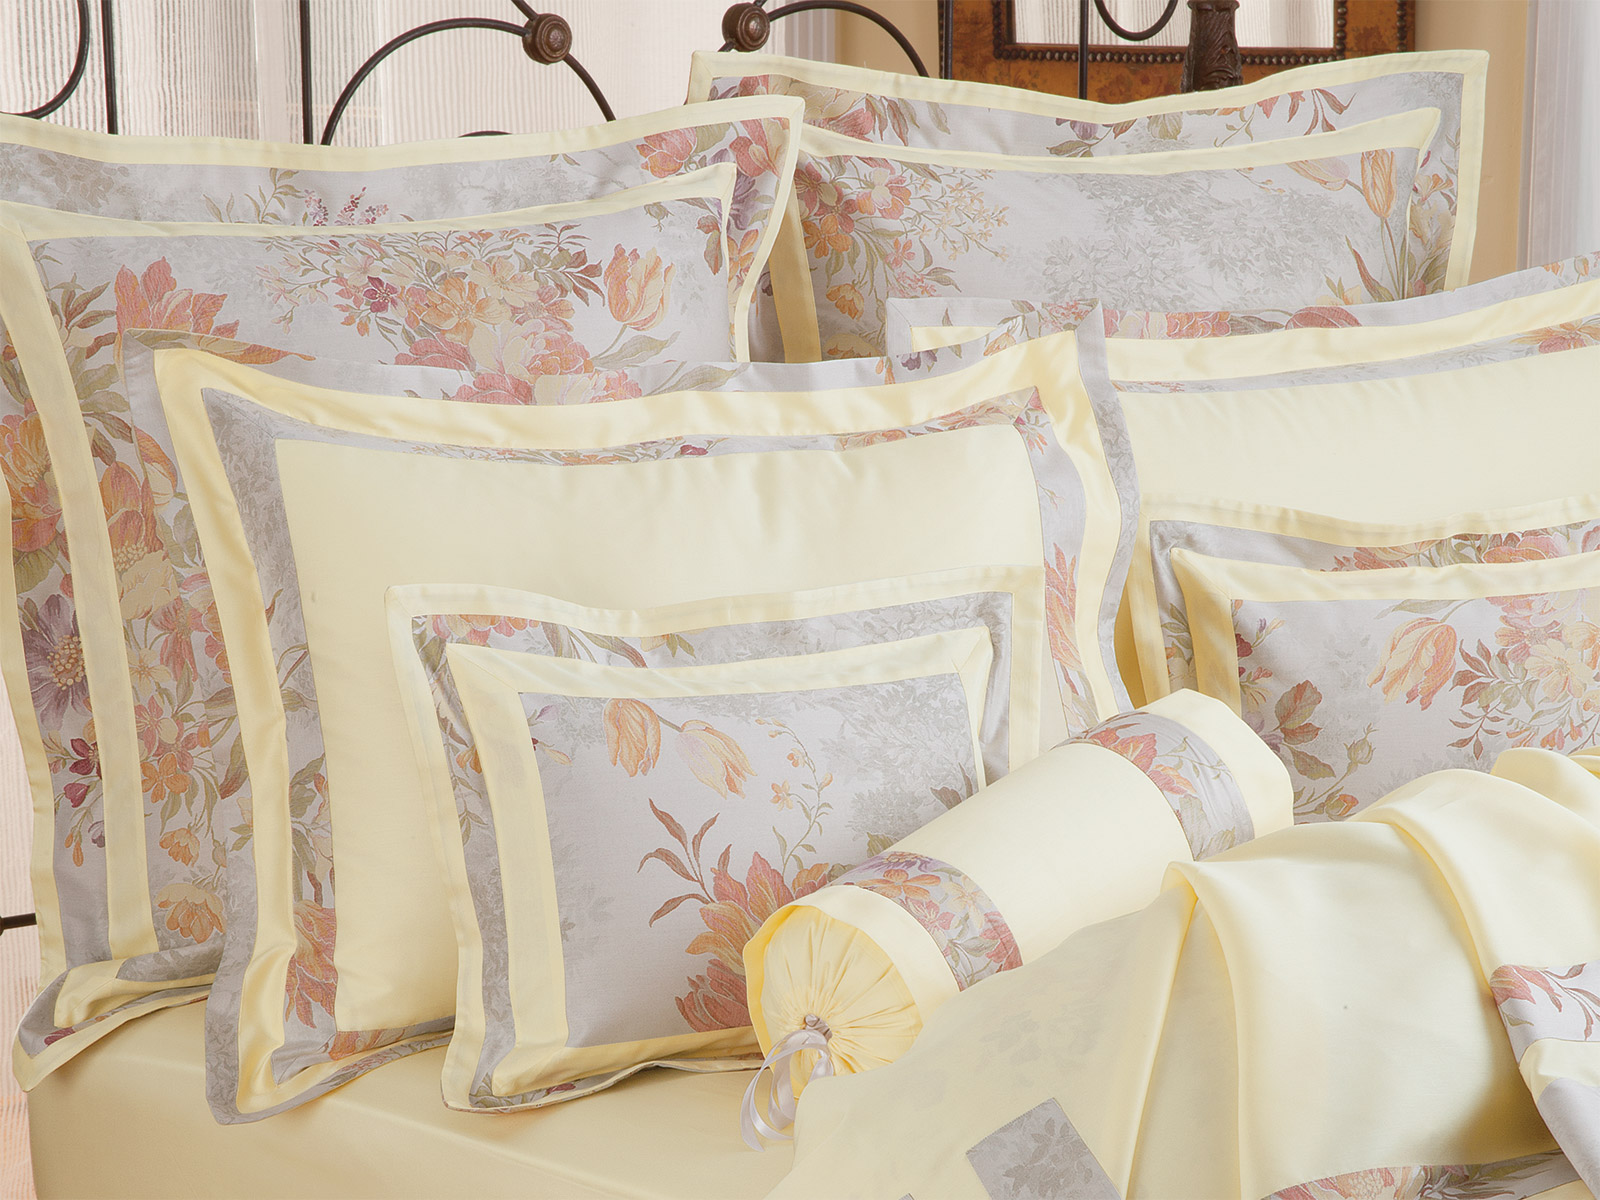 Dauphine Bed in a Bag Comforter Sheets Pillow Cases FULL Bedding Set ALL SIZES